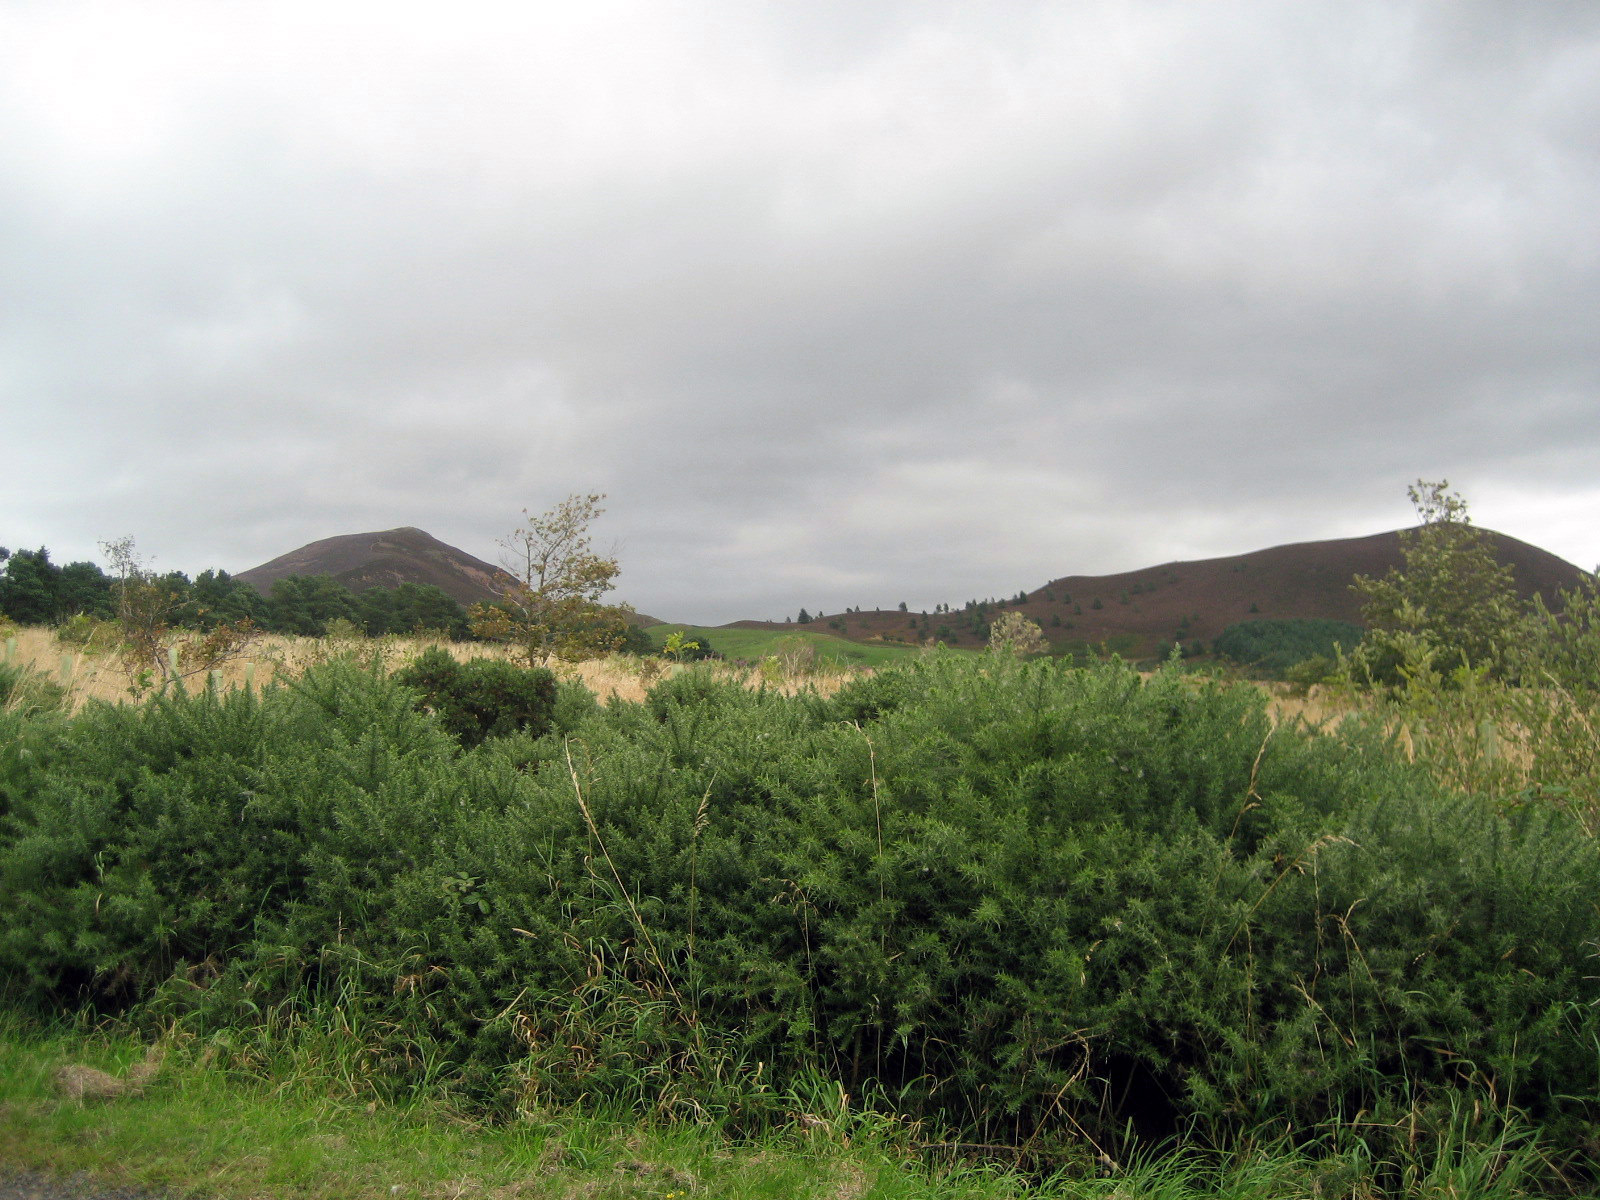 Eildon Hill is often called the Eildon Hills because it has three peaks.